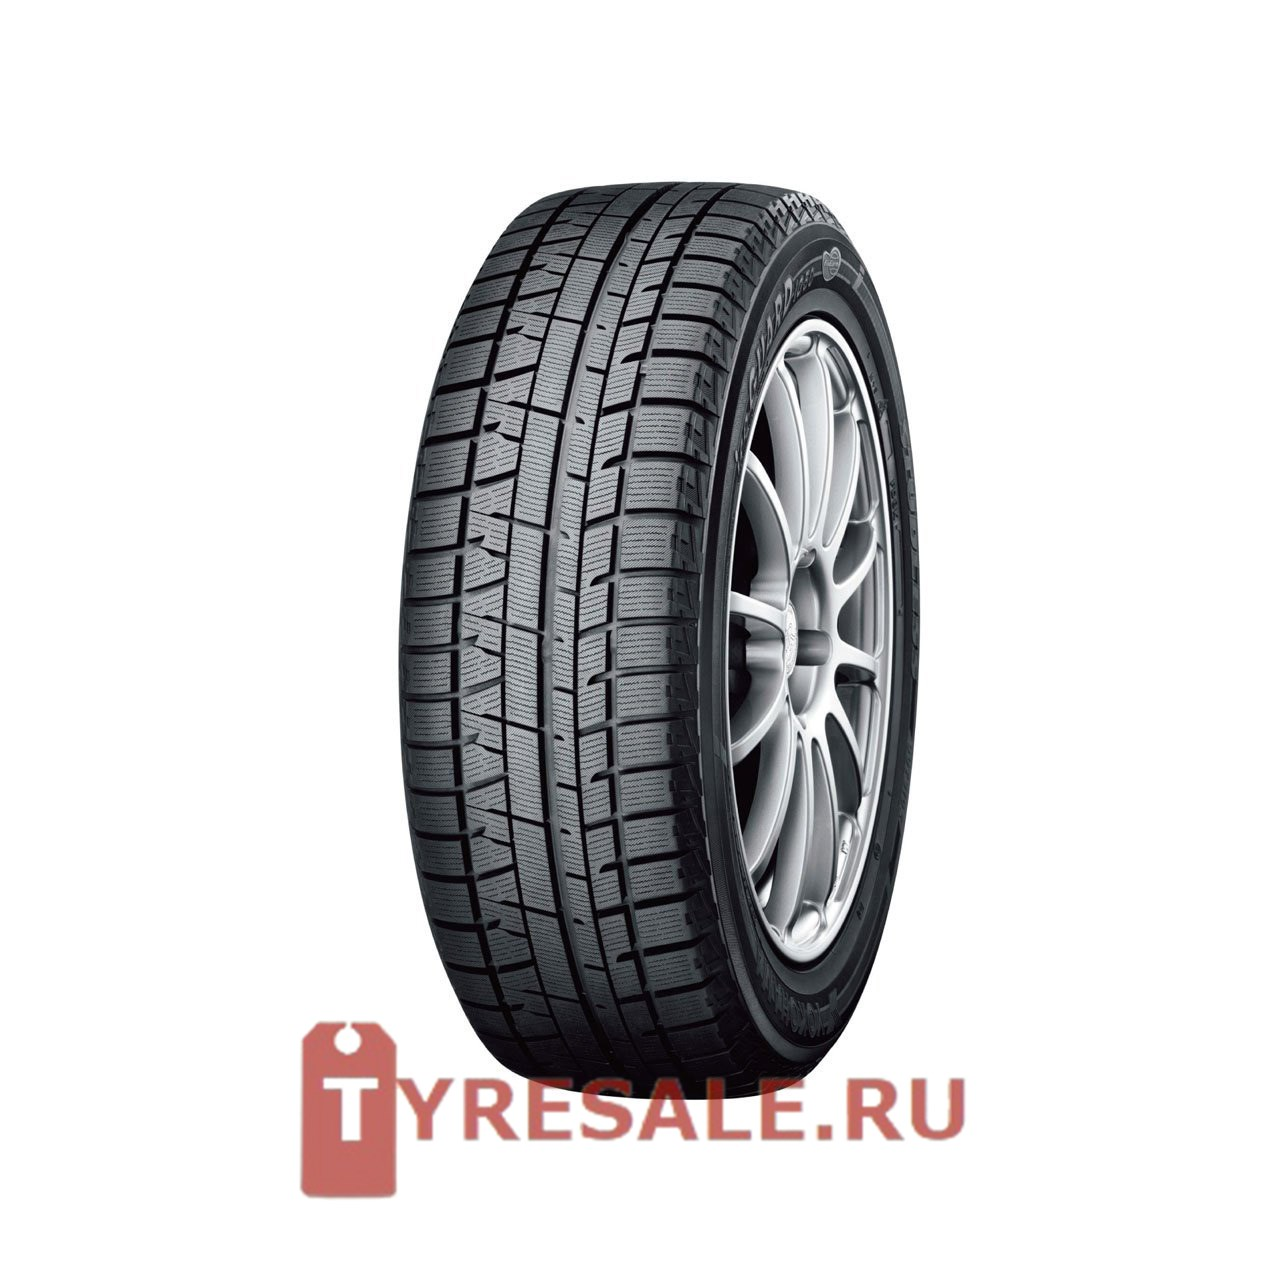 Yokohama Ice Guard IG50 Plus 215/55 R18 95 Q